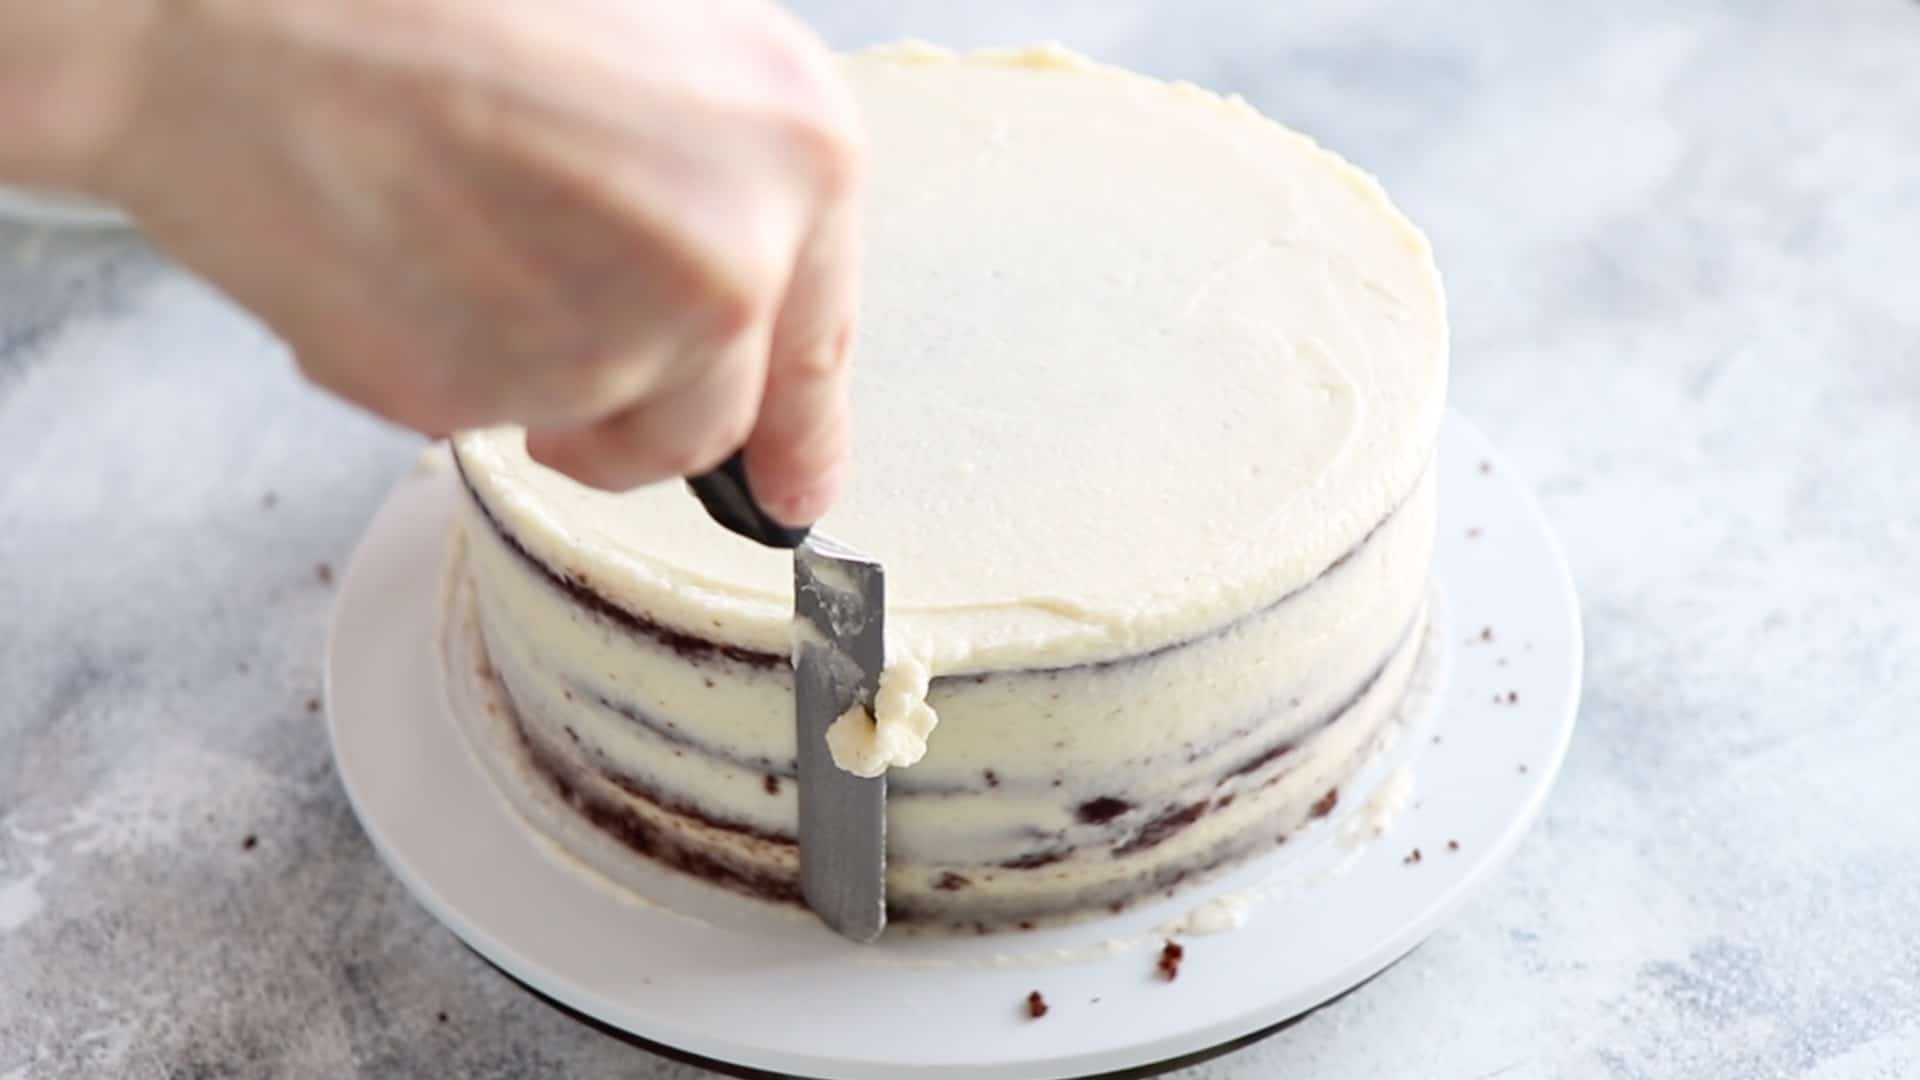 Leveling the sides of the chocolate cake with coconut frosting with an offset spatula